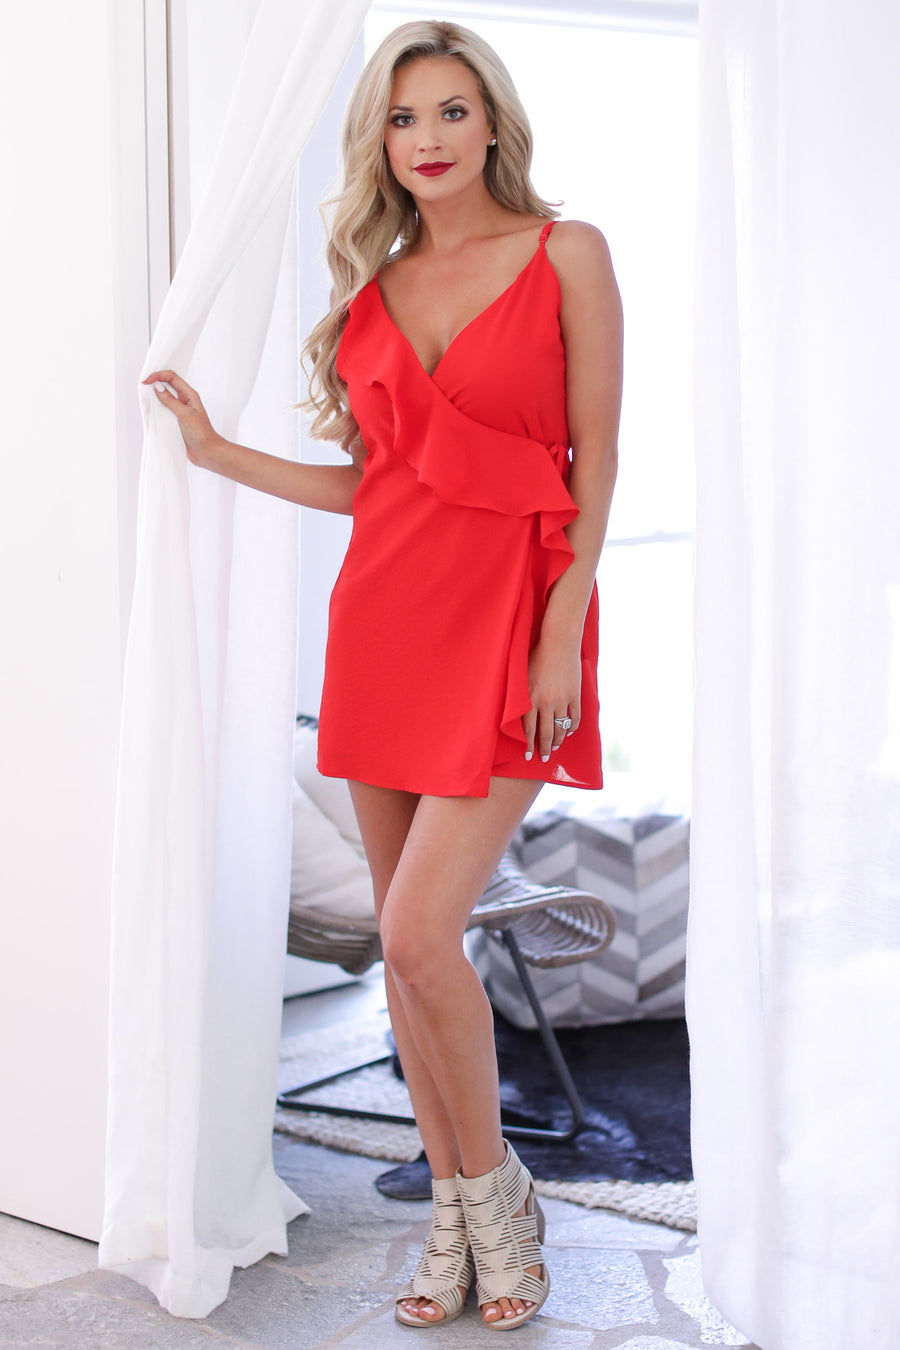 EVERLY Grand Finale Dress - cute red wrap dress, 4th of July outfit, Closet Candy Boutique